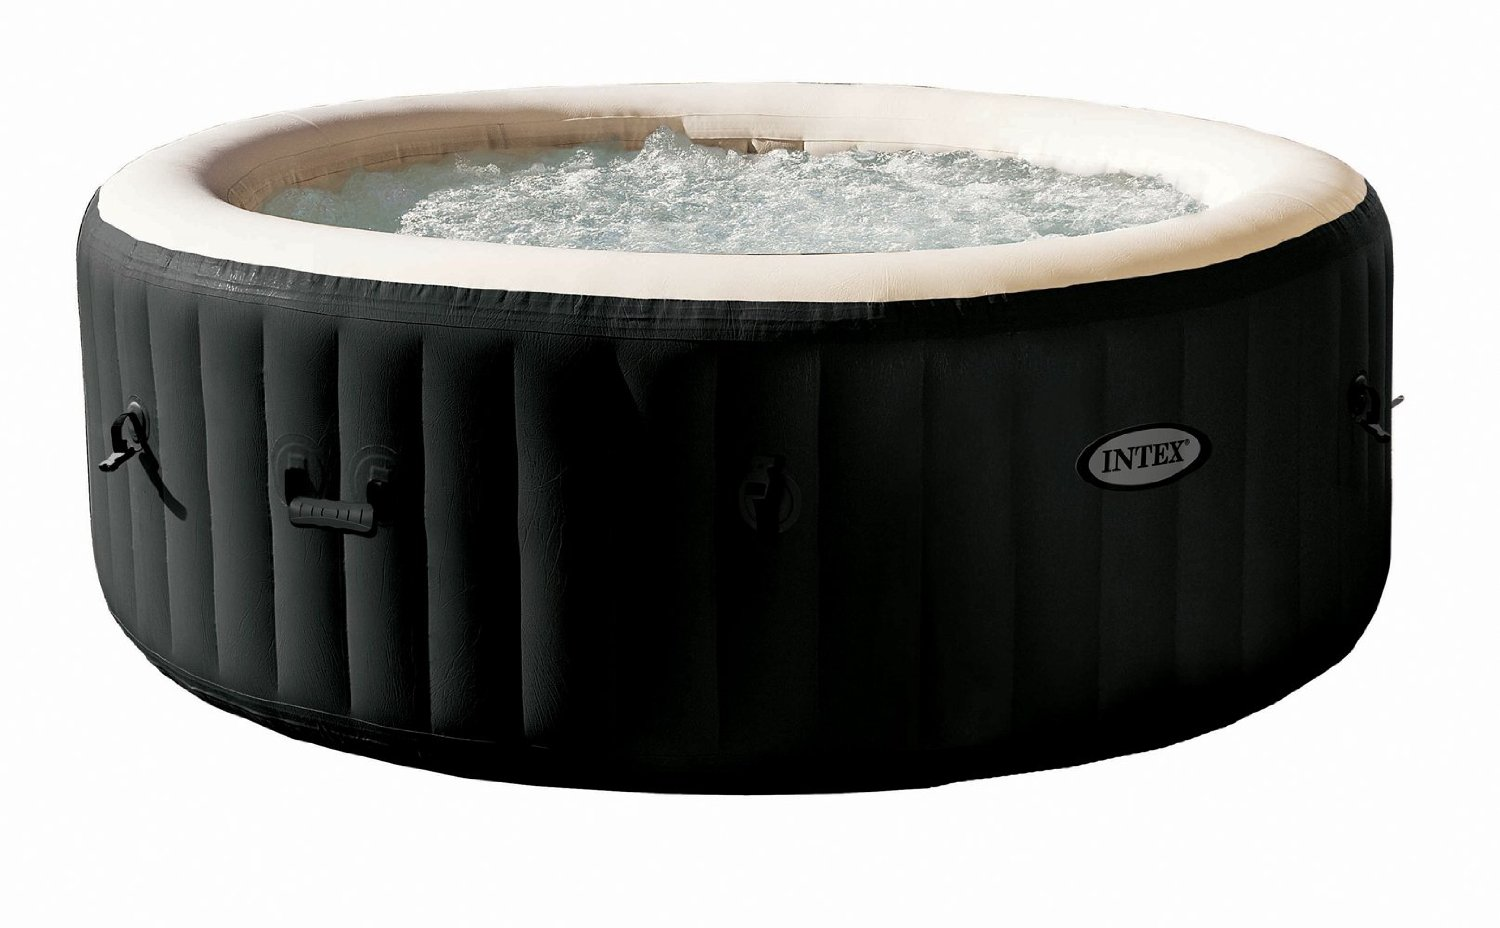 Intex Purespa Jet and Bubble Inflatable Hot Tub